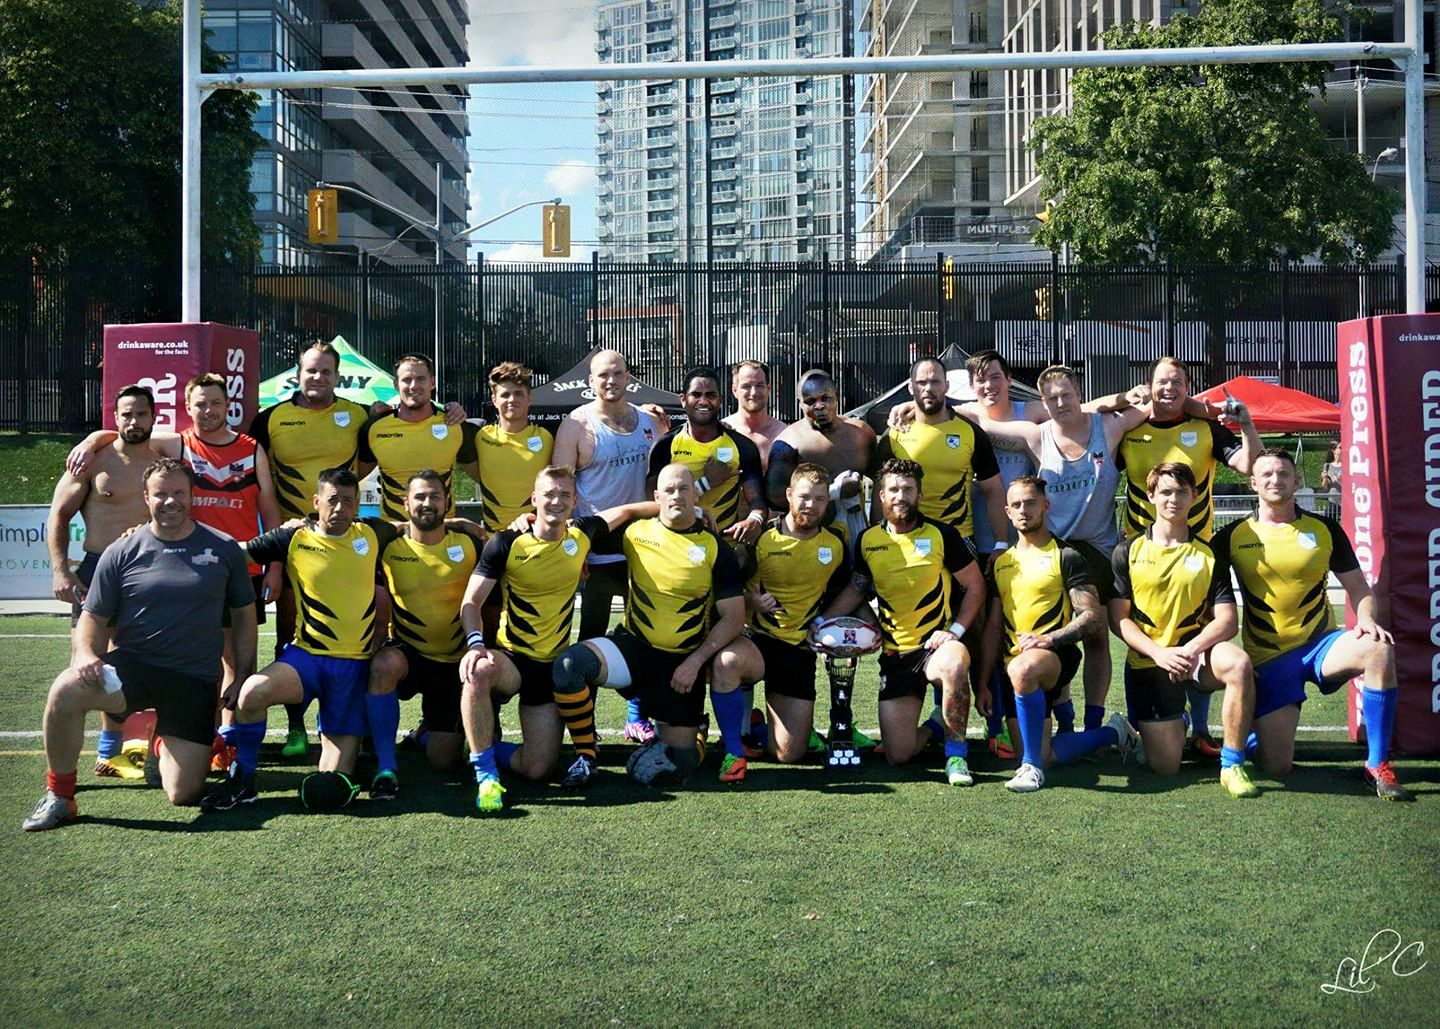 fa8dc3d21aeaf3 Toronto RLC Crowned 2017 ORL Champs! - Canada Rugby League Association